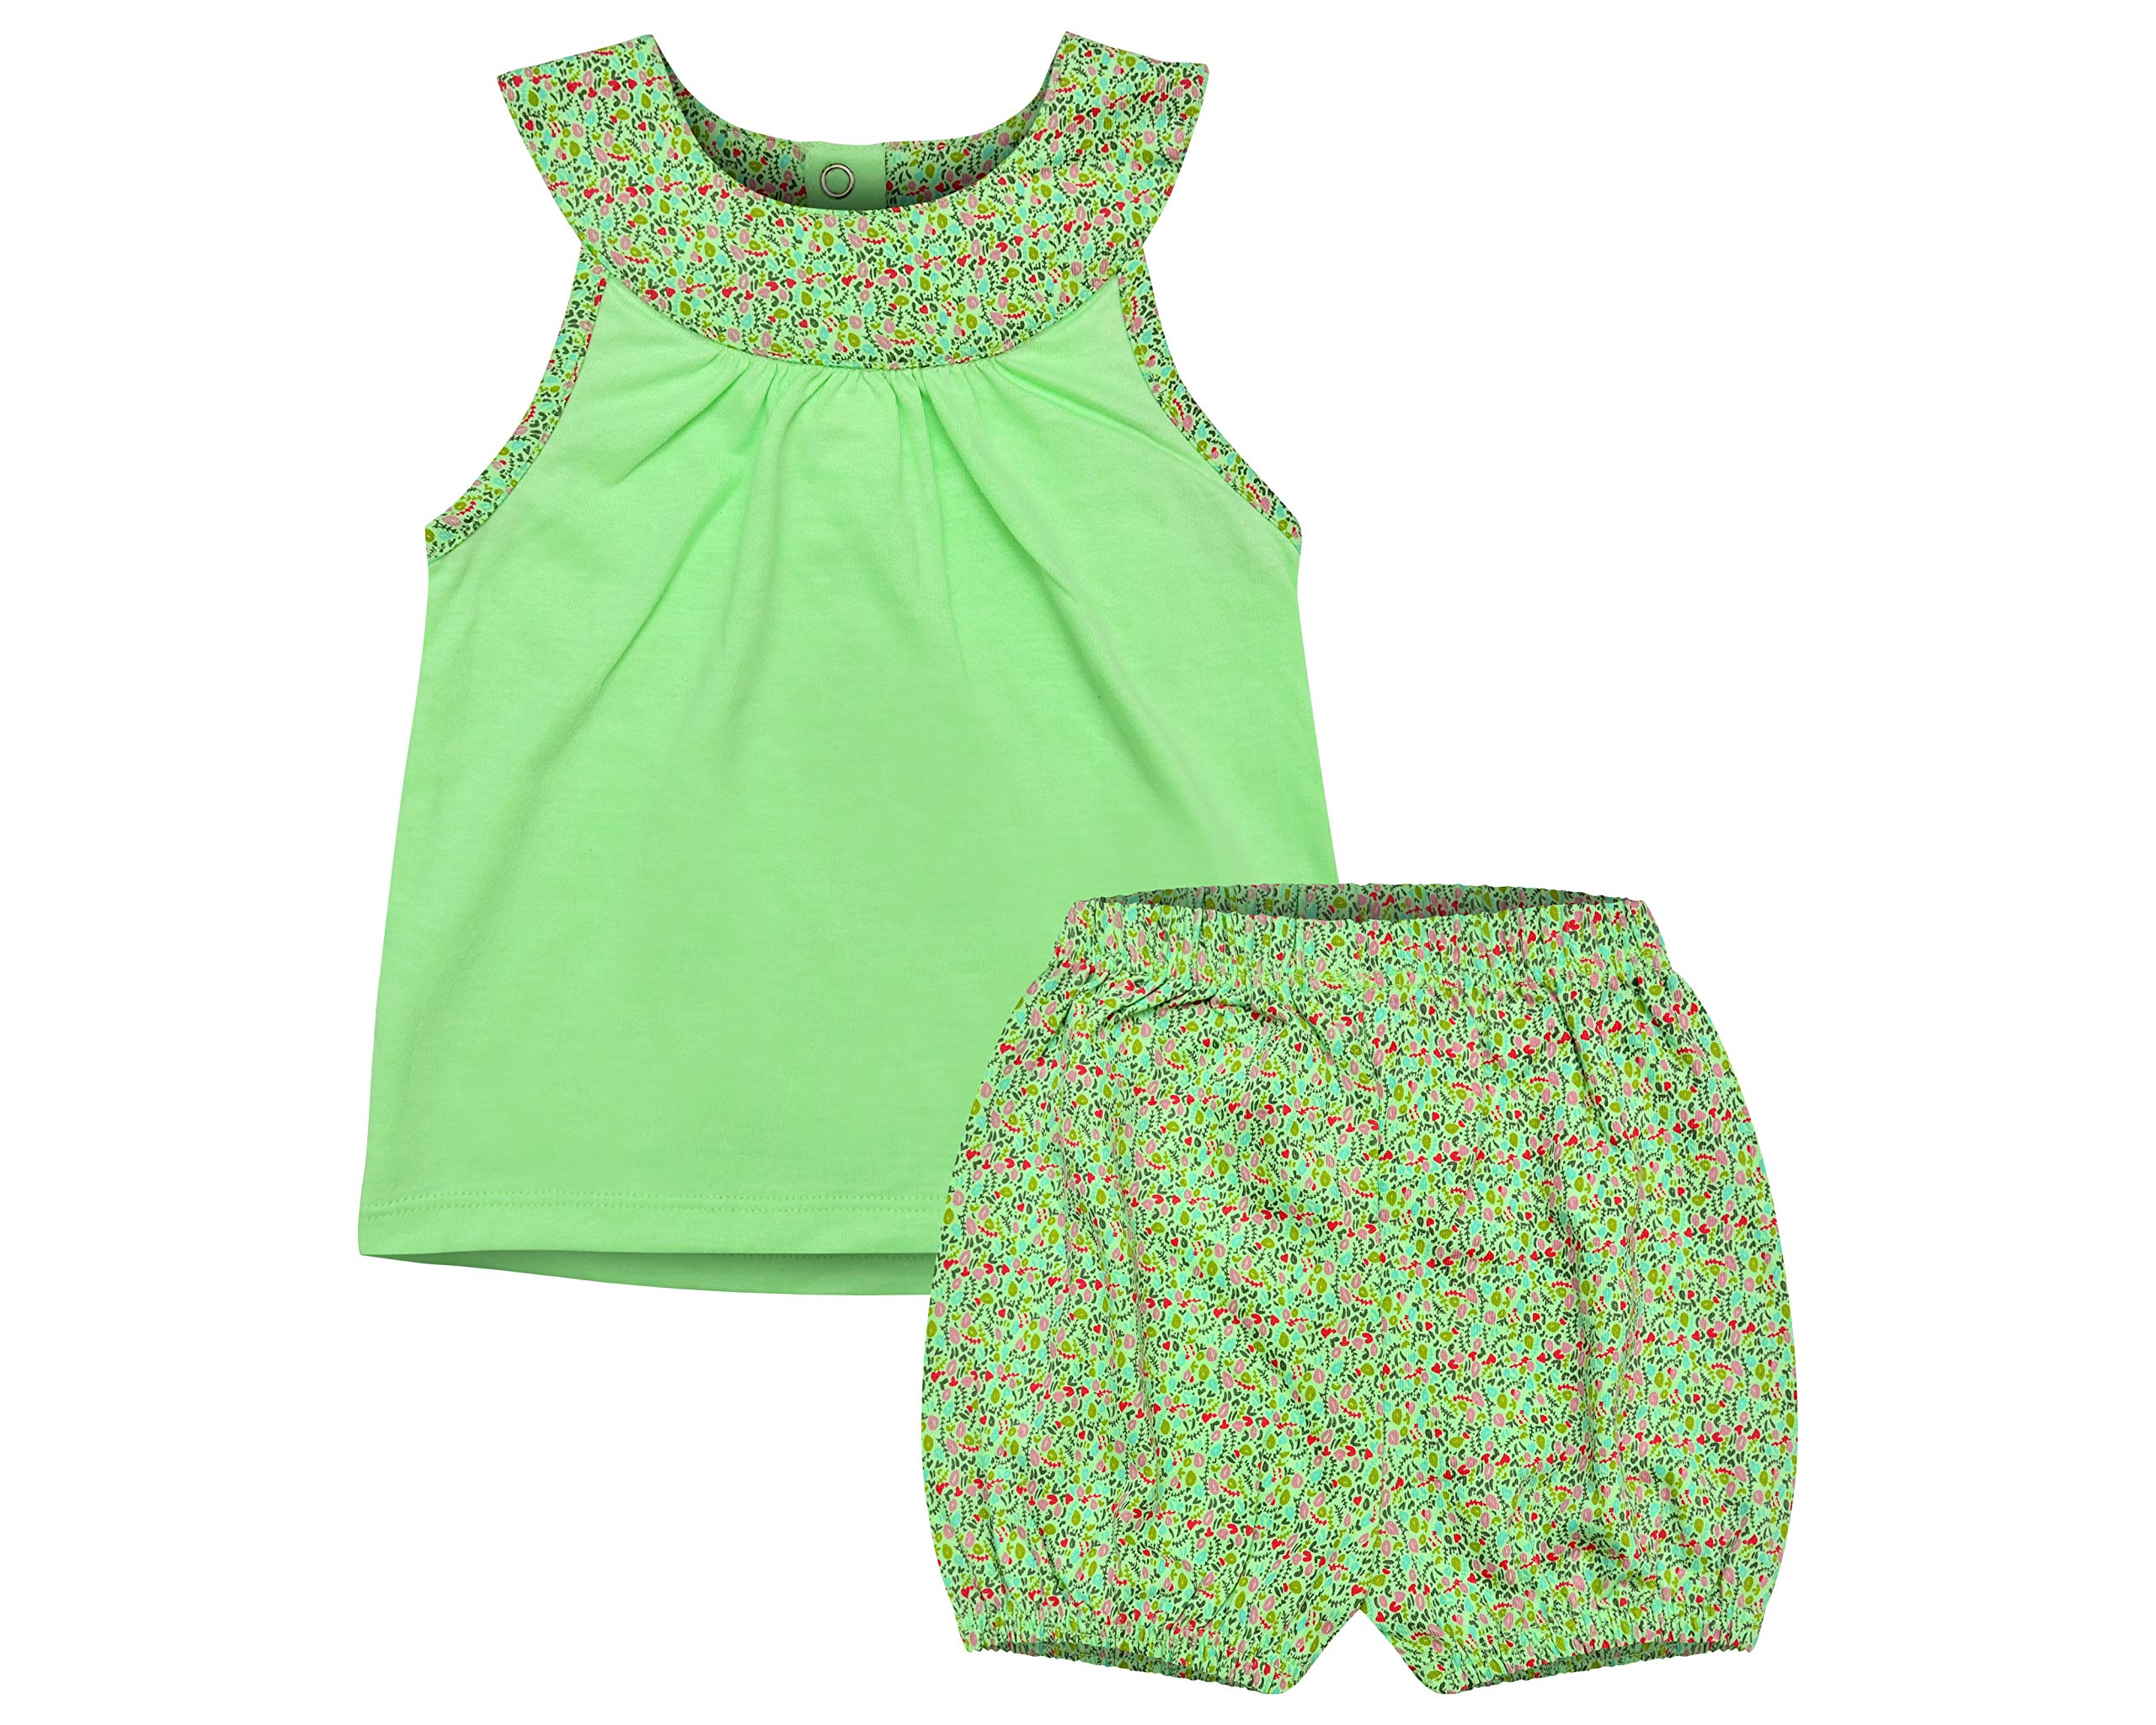 Clover Kingdom Baby and Toddler Girls Dress Set-100% Cotton Outfit for Infant Girl